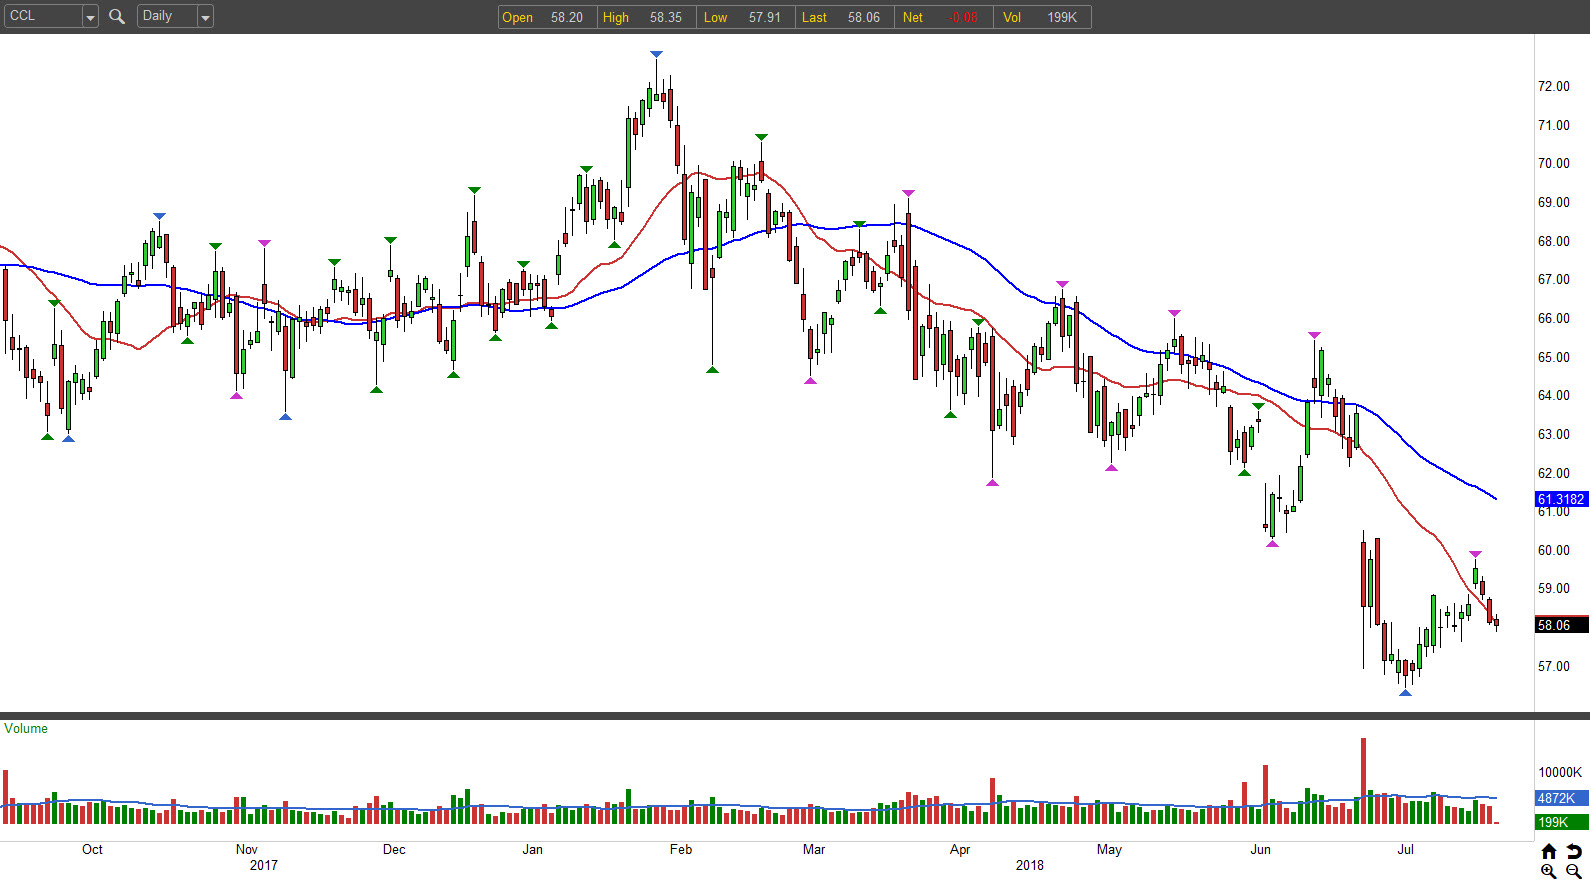 3 Bearish Options Trades to Hedge Your Bets: Carnival (CCL)